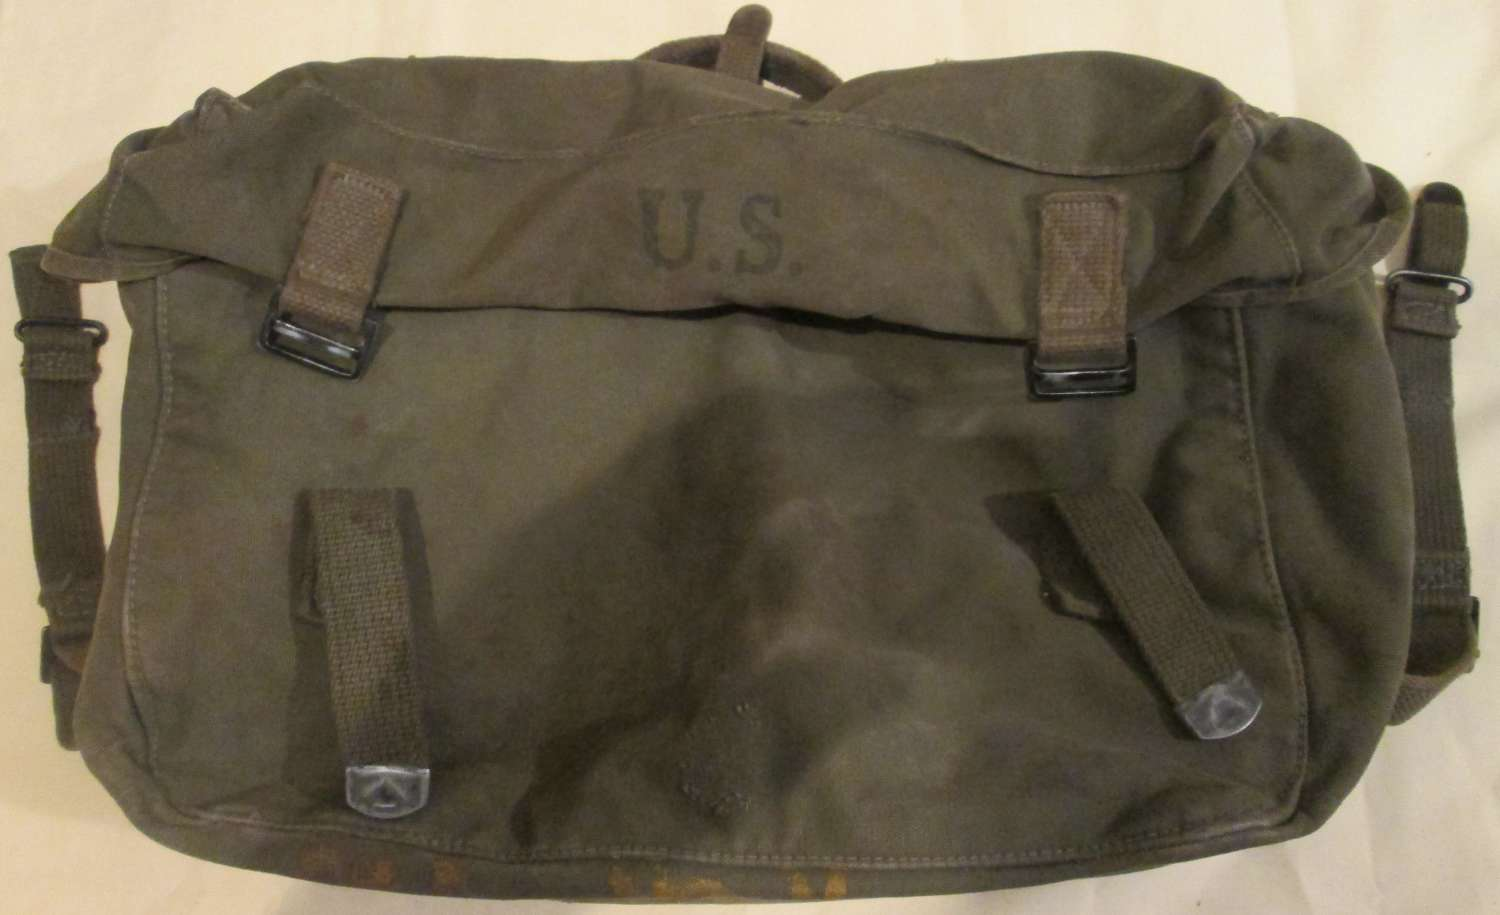 A 1944 DATED M1944 BOTTOM PART OF THE WEBBING PACK / S